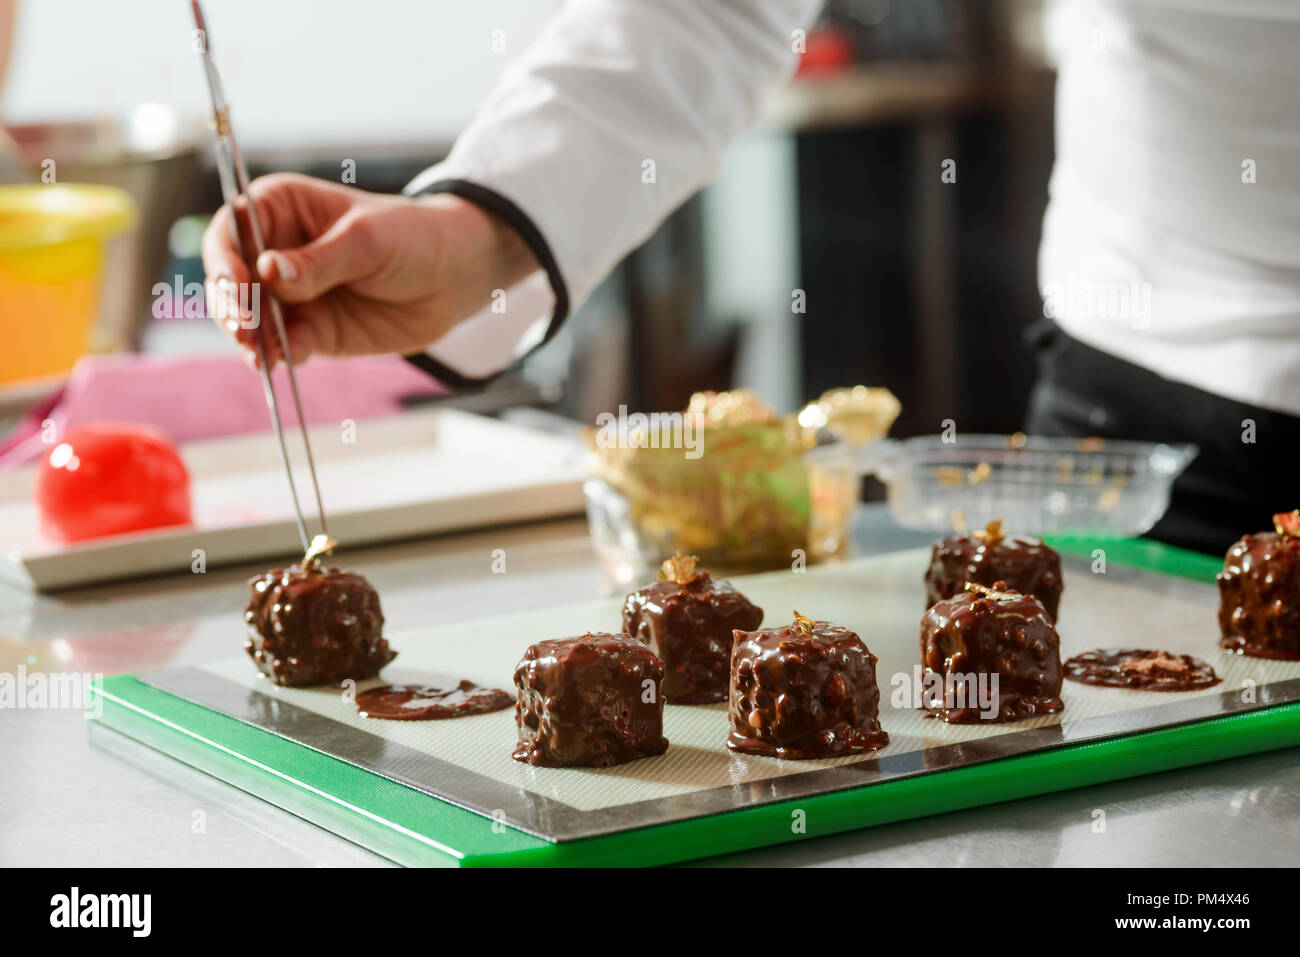 Placing decorations with kitchen tongs - Stock Image